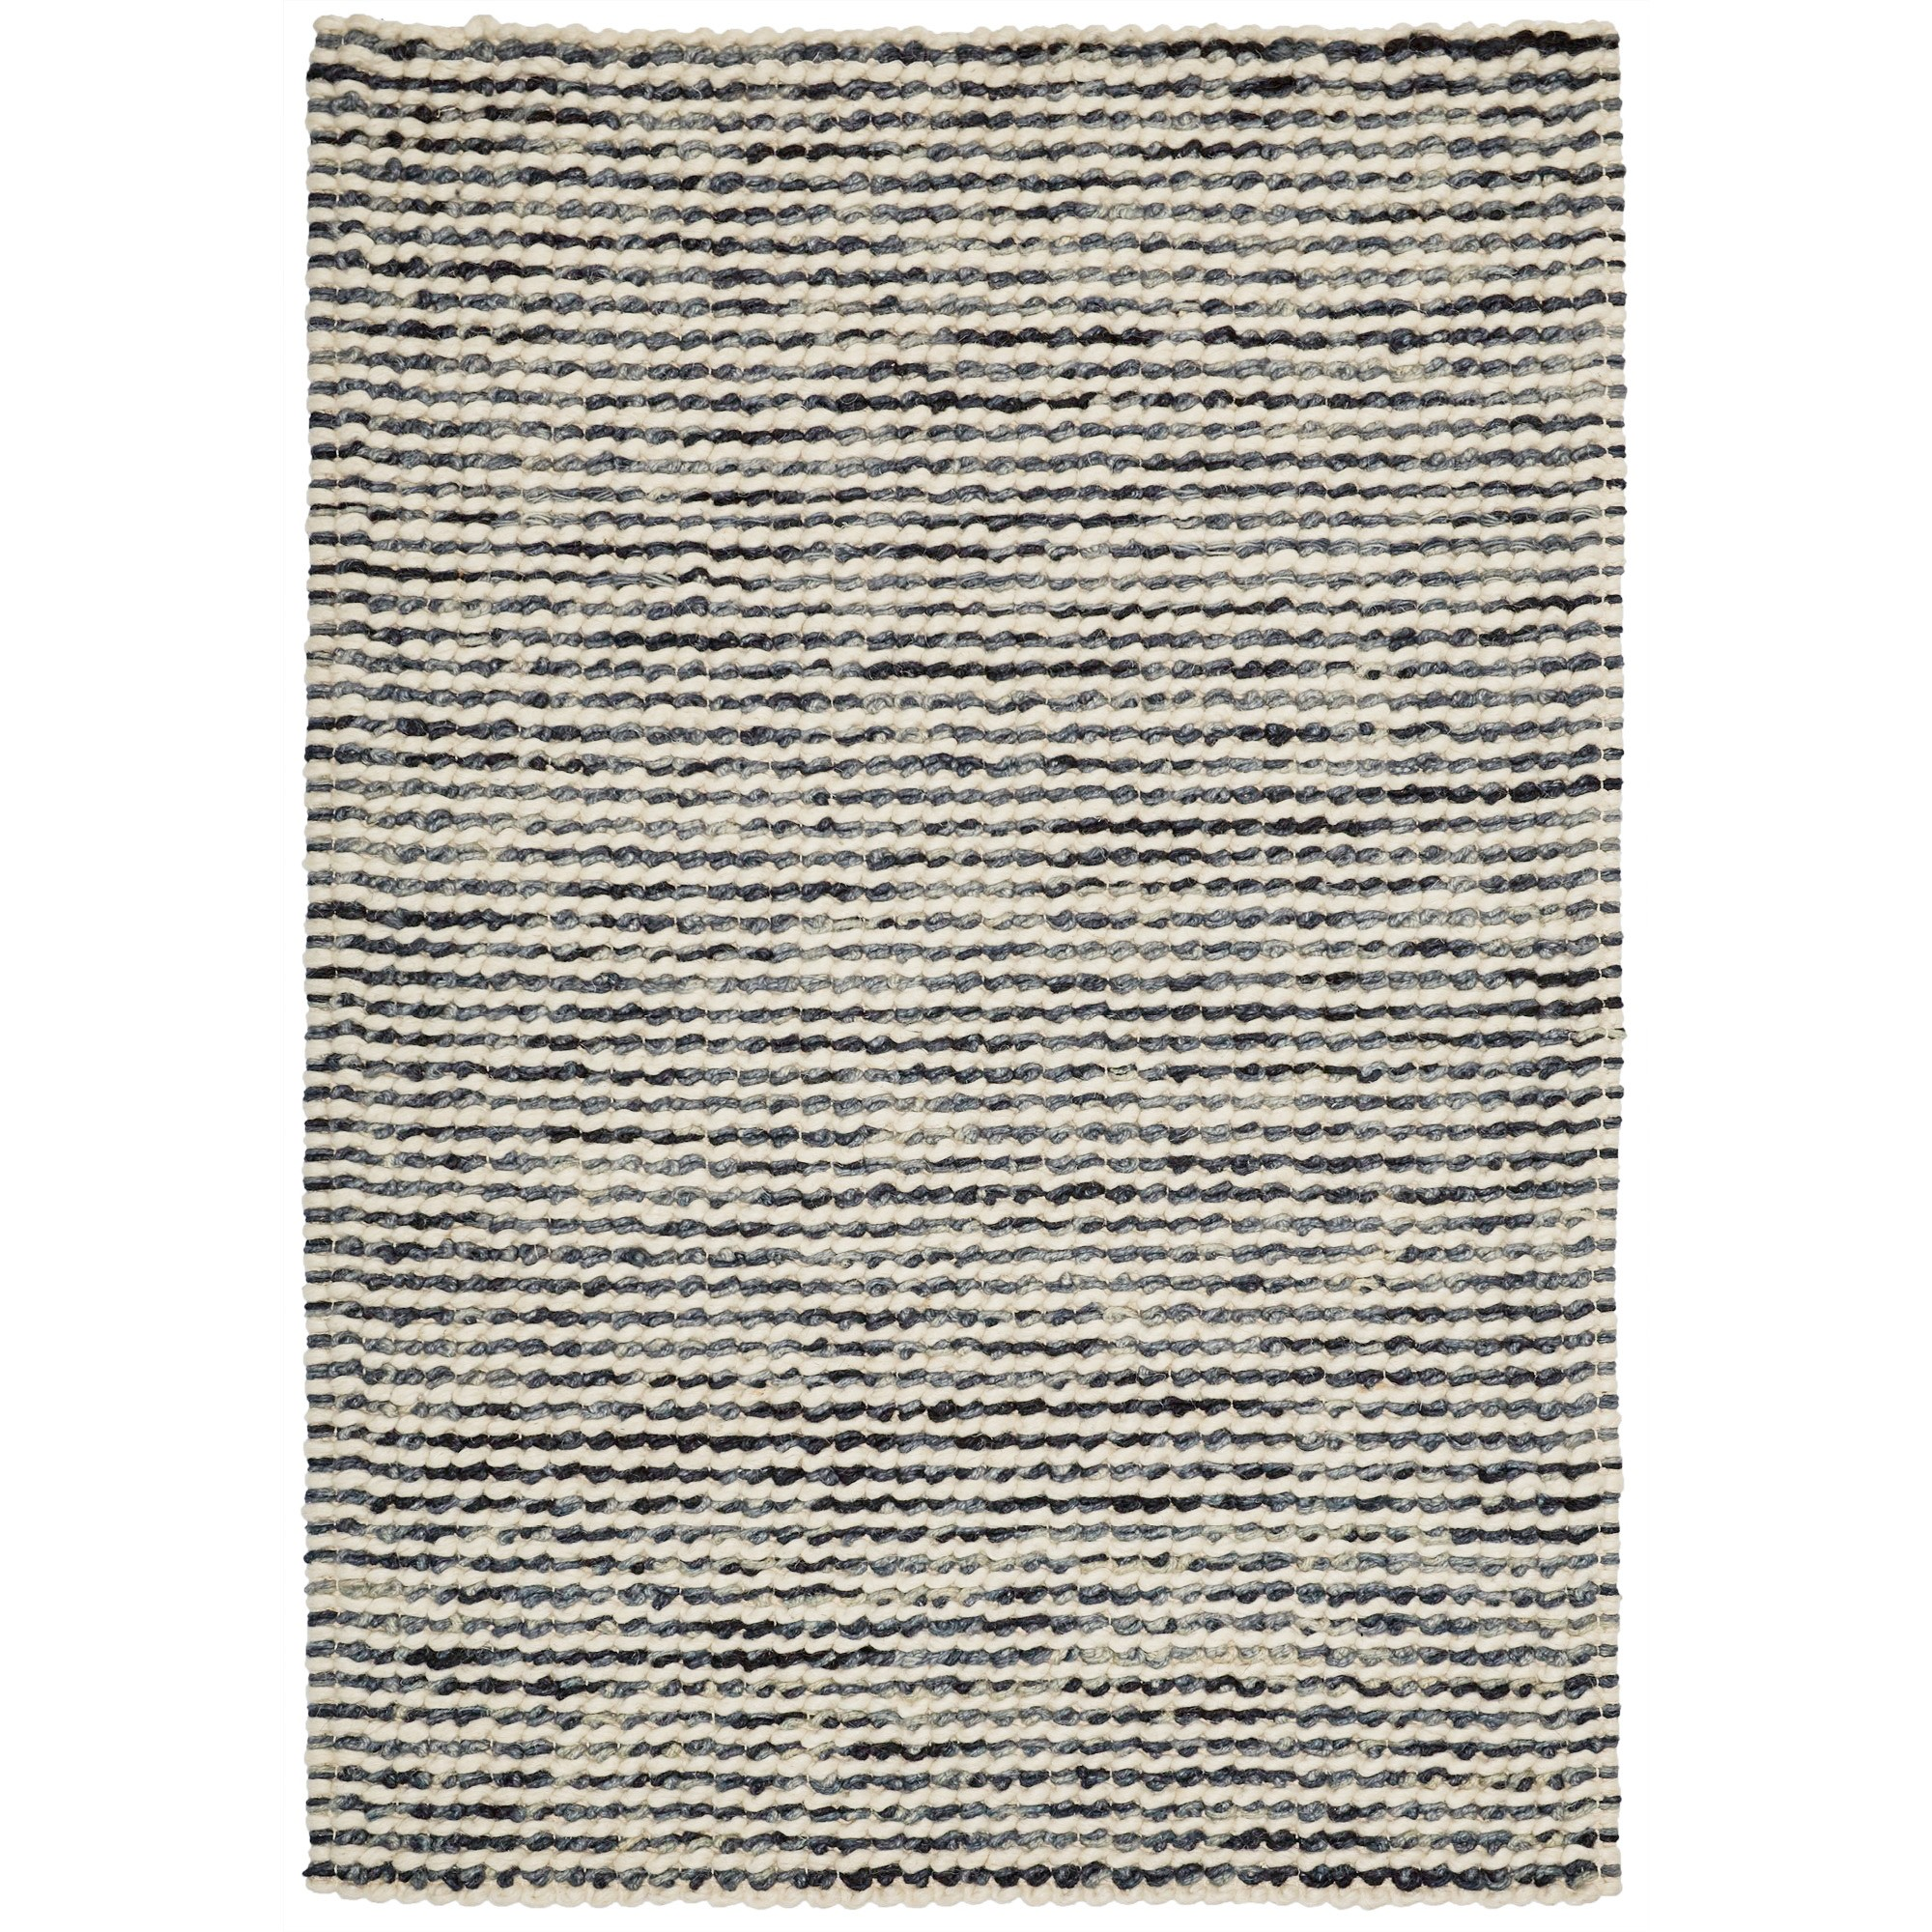 Knight Wool Rug, 290x200cm, Cream / Grey